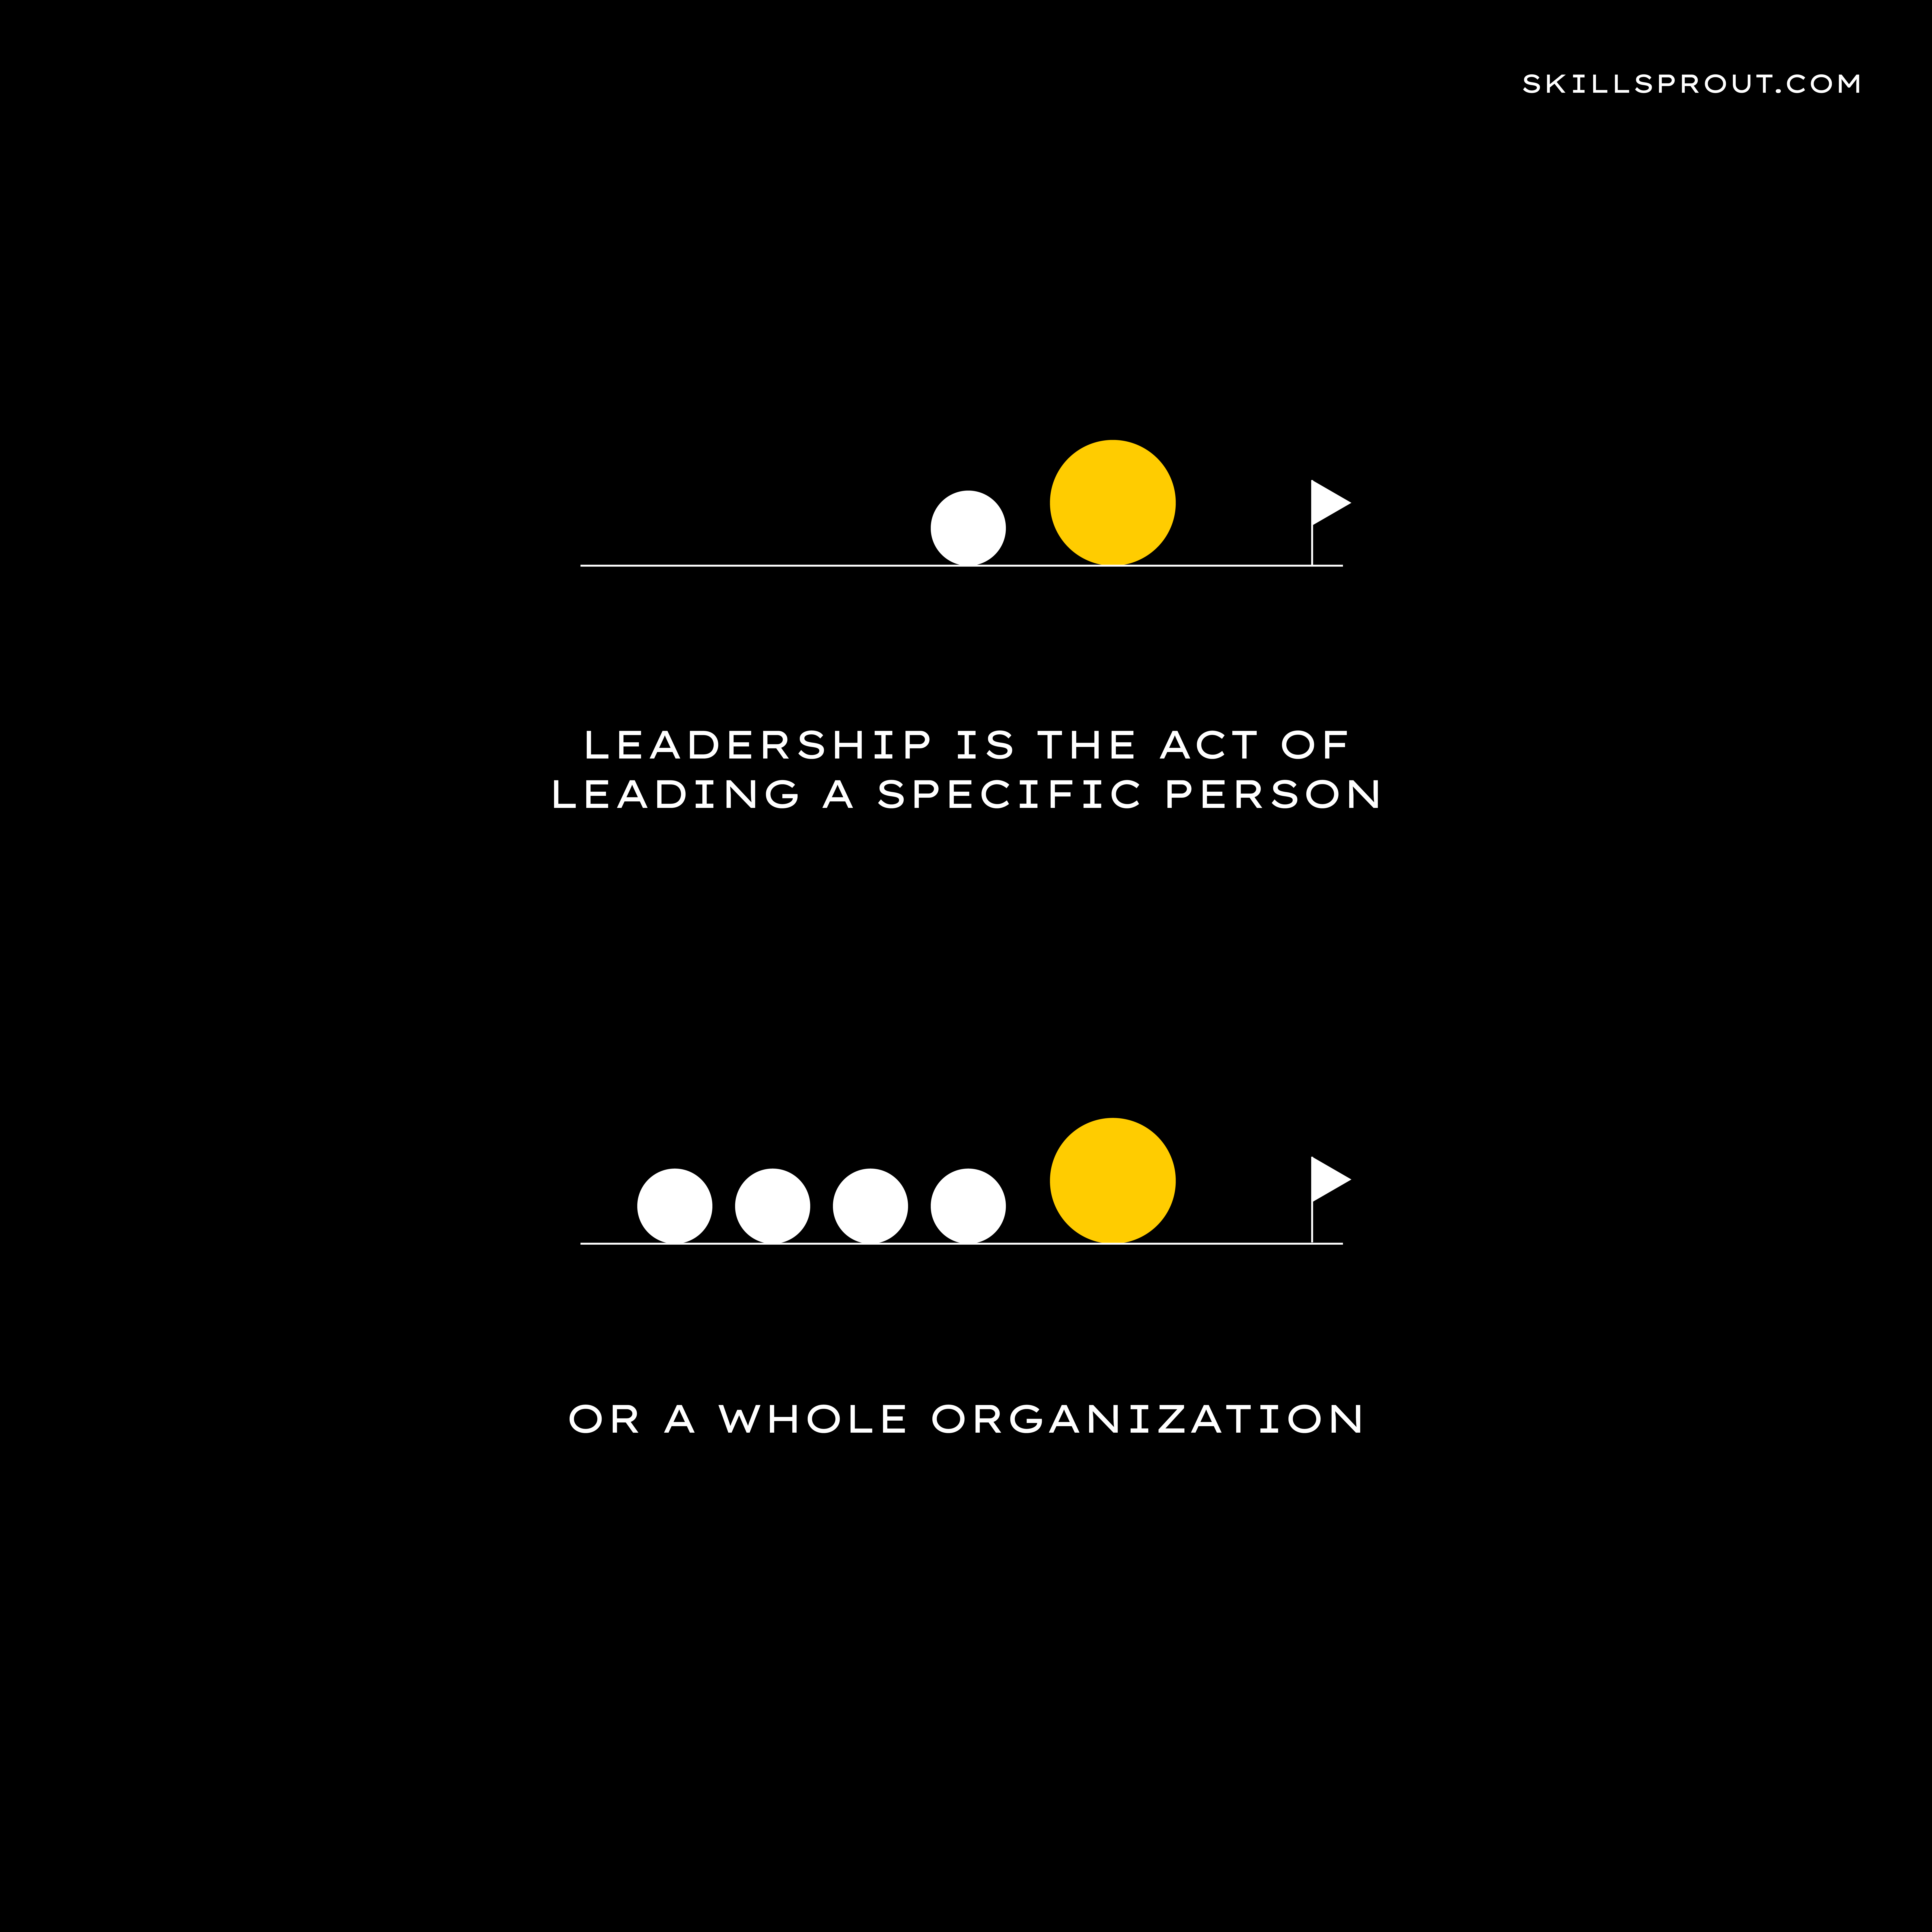 Leadership is the act of leading an individual or an organization.